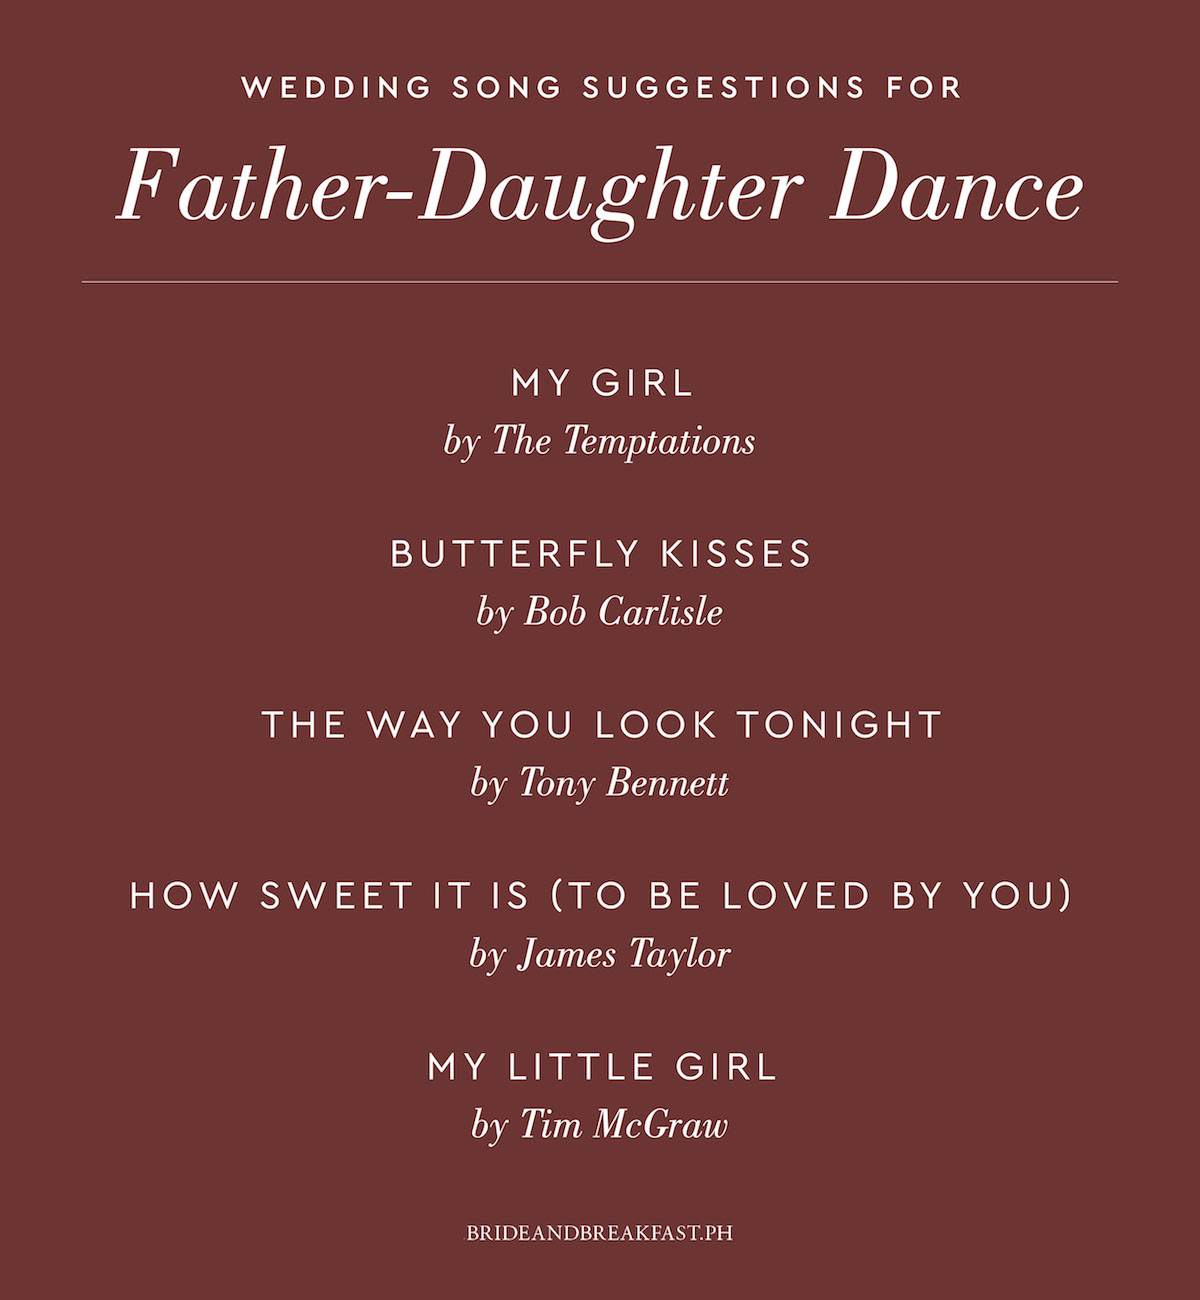 My Girl by The Temptations Butterfly Kisses by Bob Carlisle The Way You Look Tonight by Tony Bennett How Sweet It Is (To Be Loved By You) by James Taylor My Little Girl by Tim McGraw